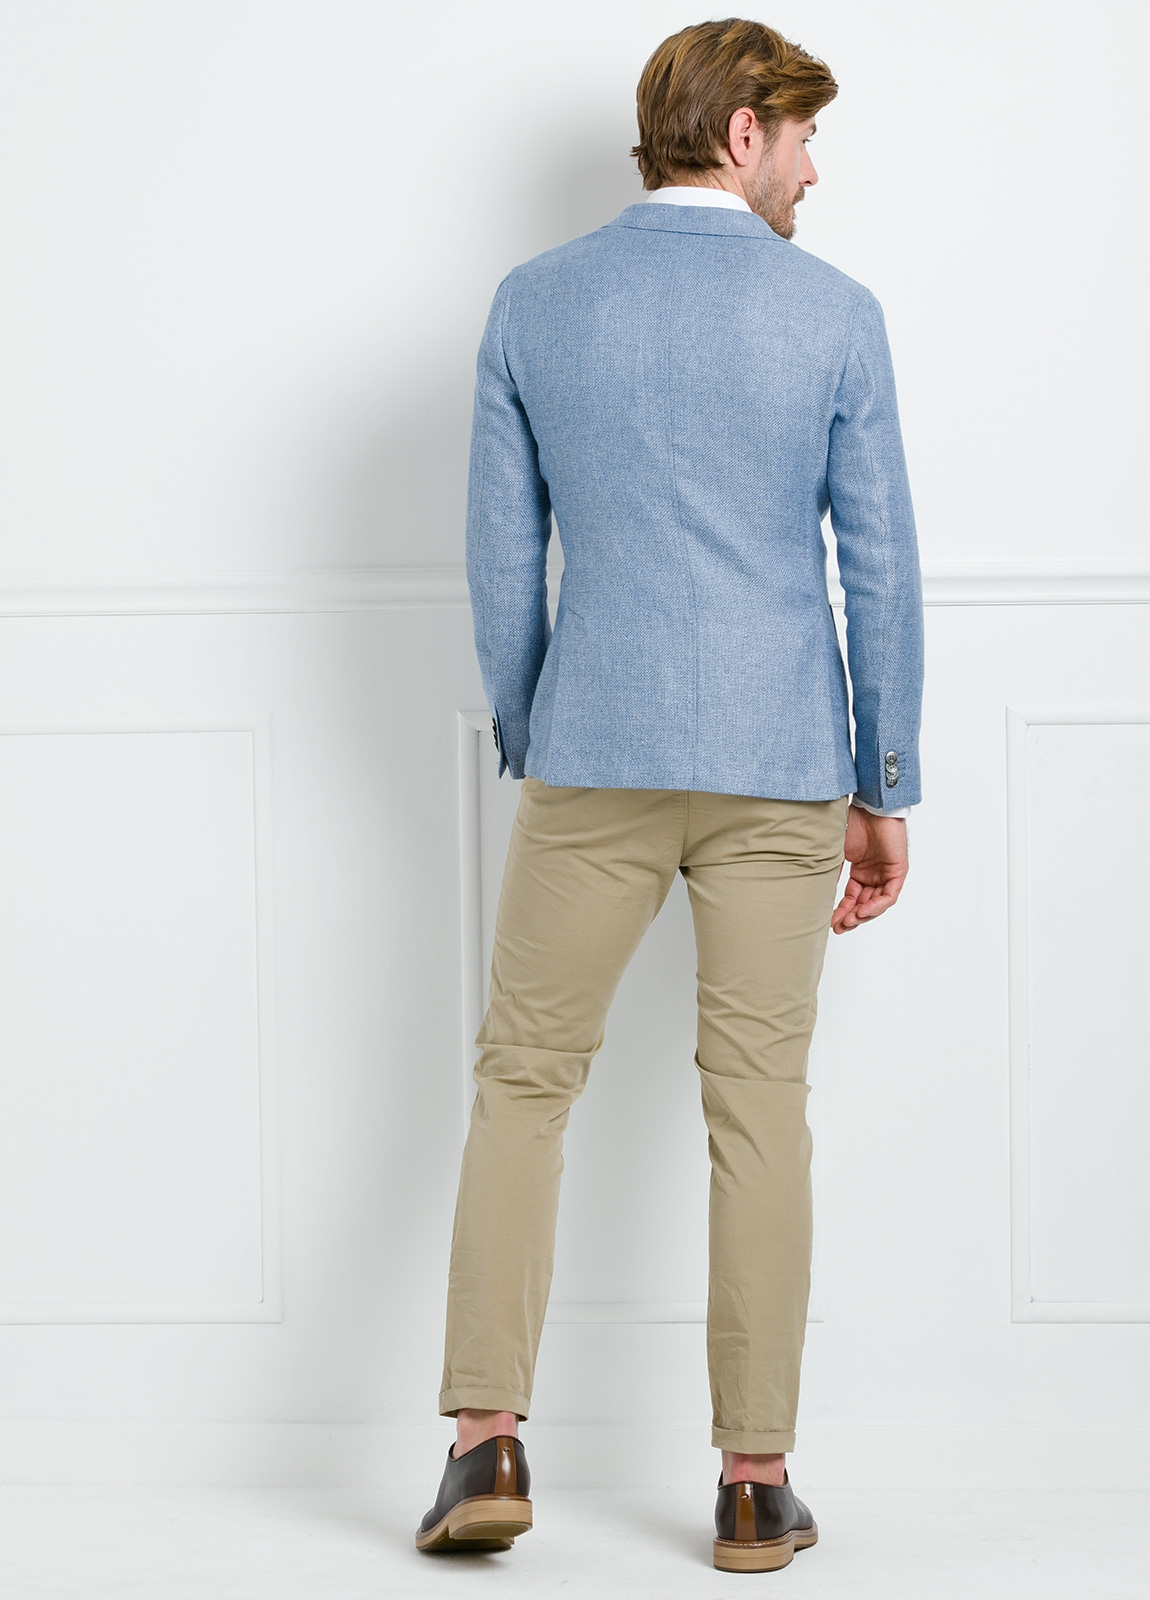 Americana SOFT JACKET Slim Fit textura color celeste. 75% Cáñamo 25% lana. - Ítem2